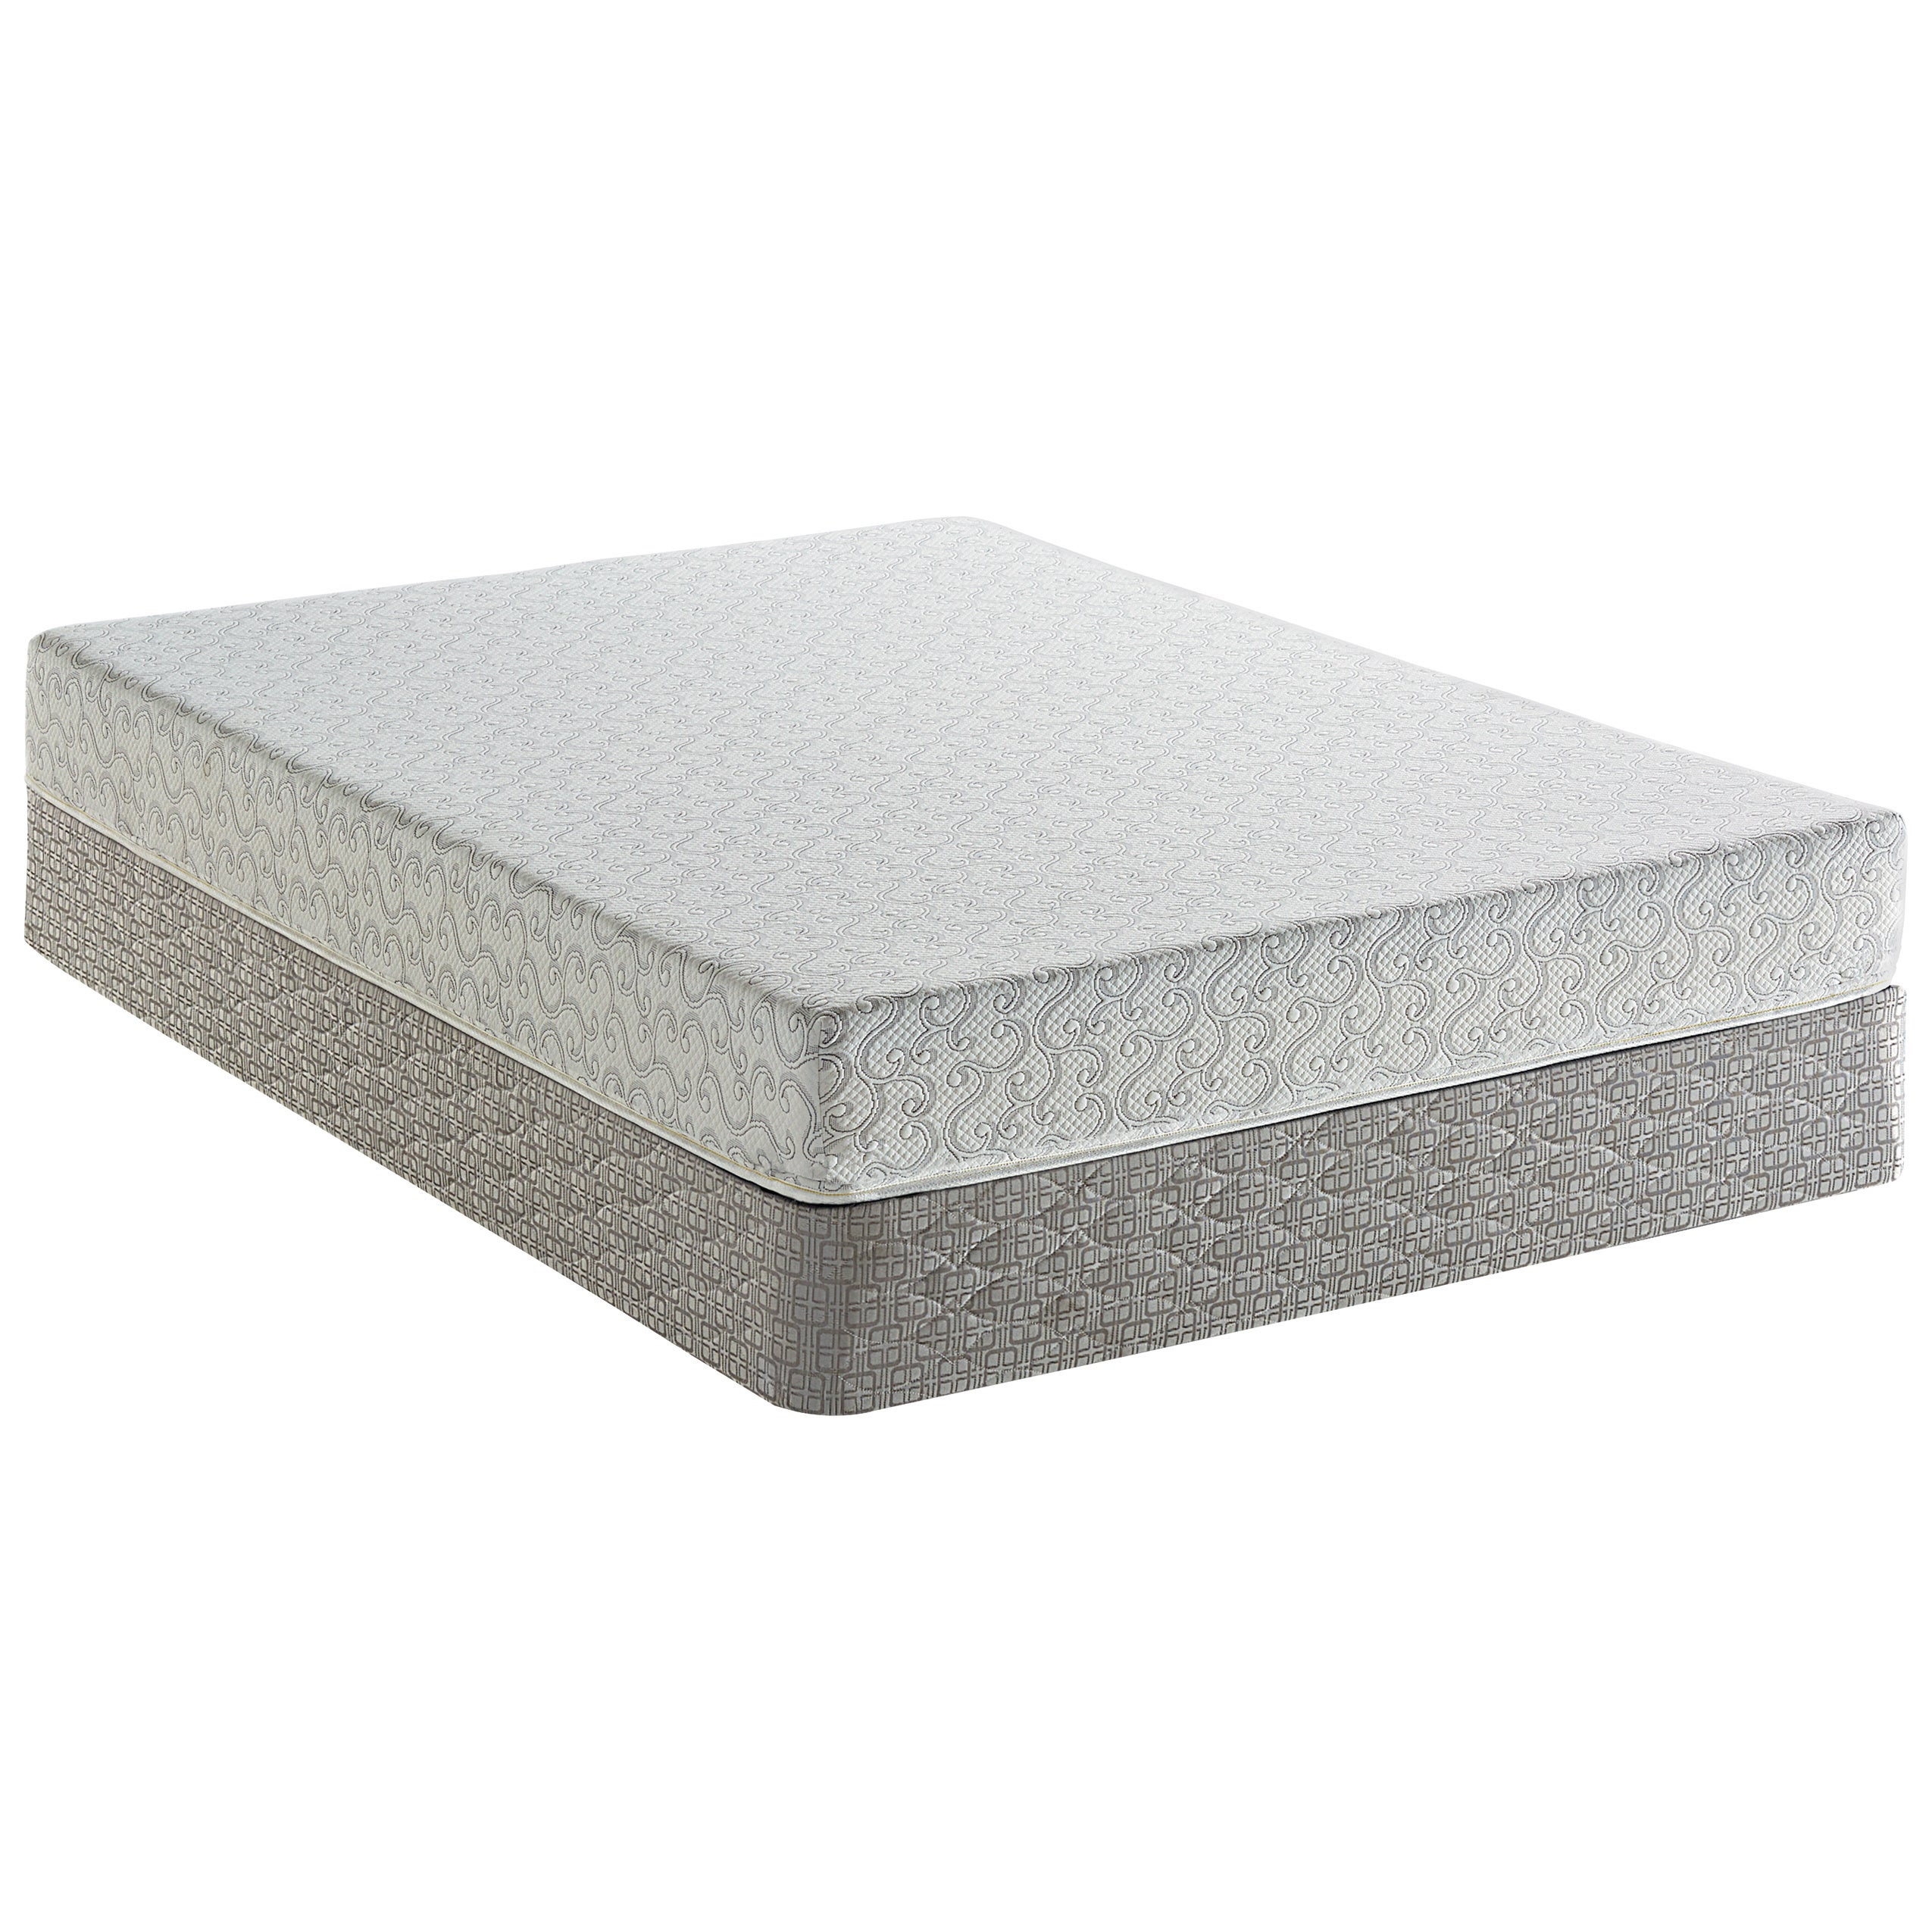 canada and firm stature queen number top mattresses t ii products mattress tight item set serta